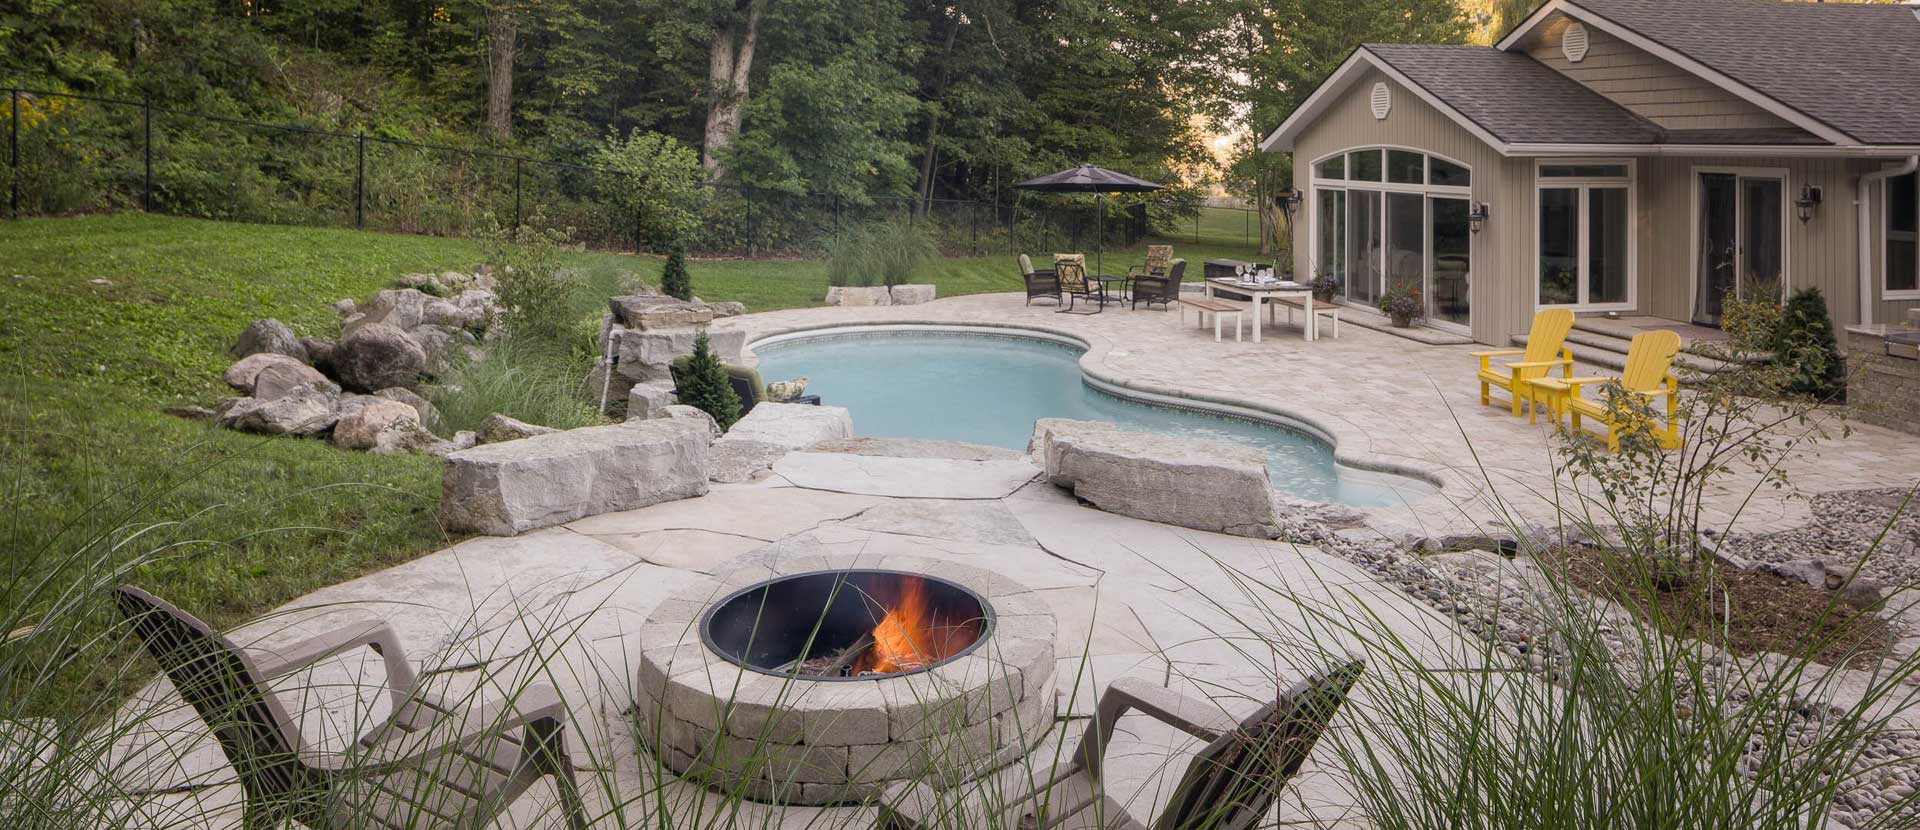 Lasting Impression Landscape Construction - Kingston, ON